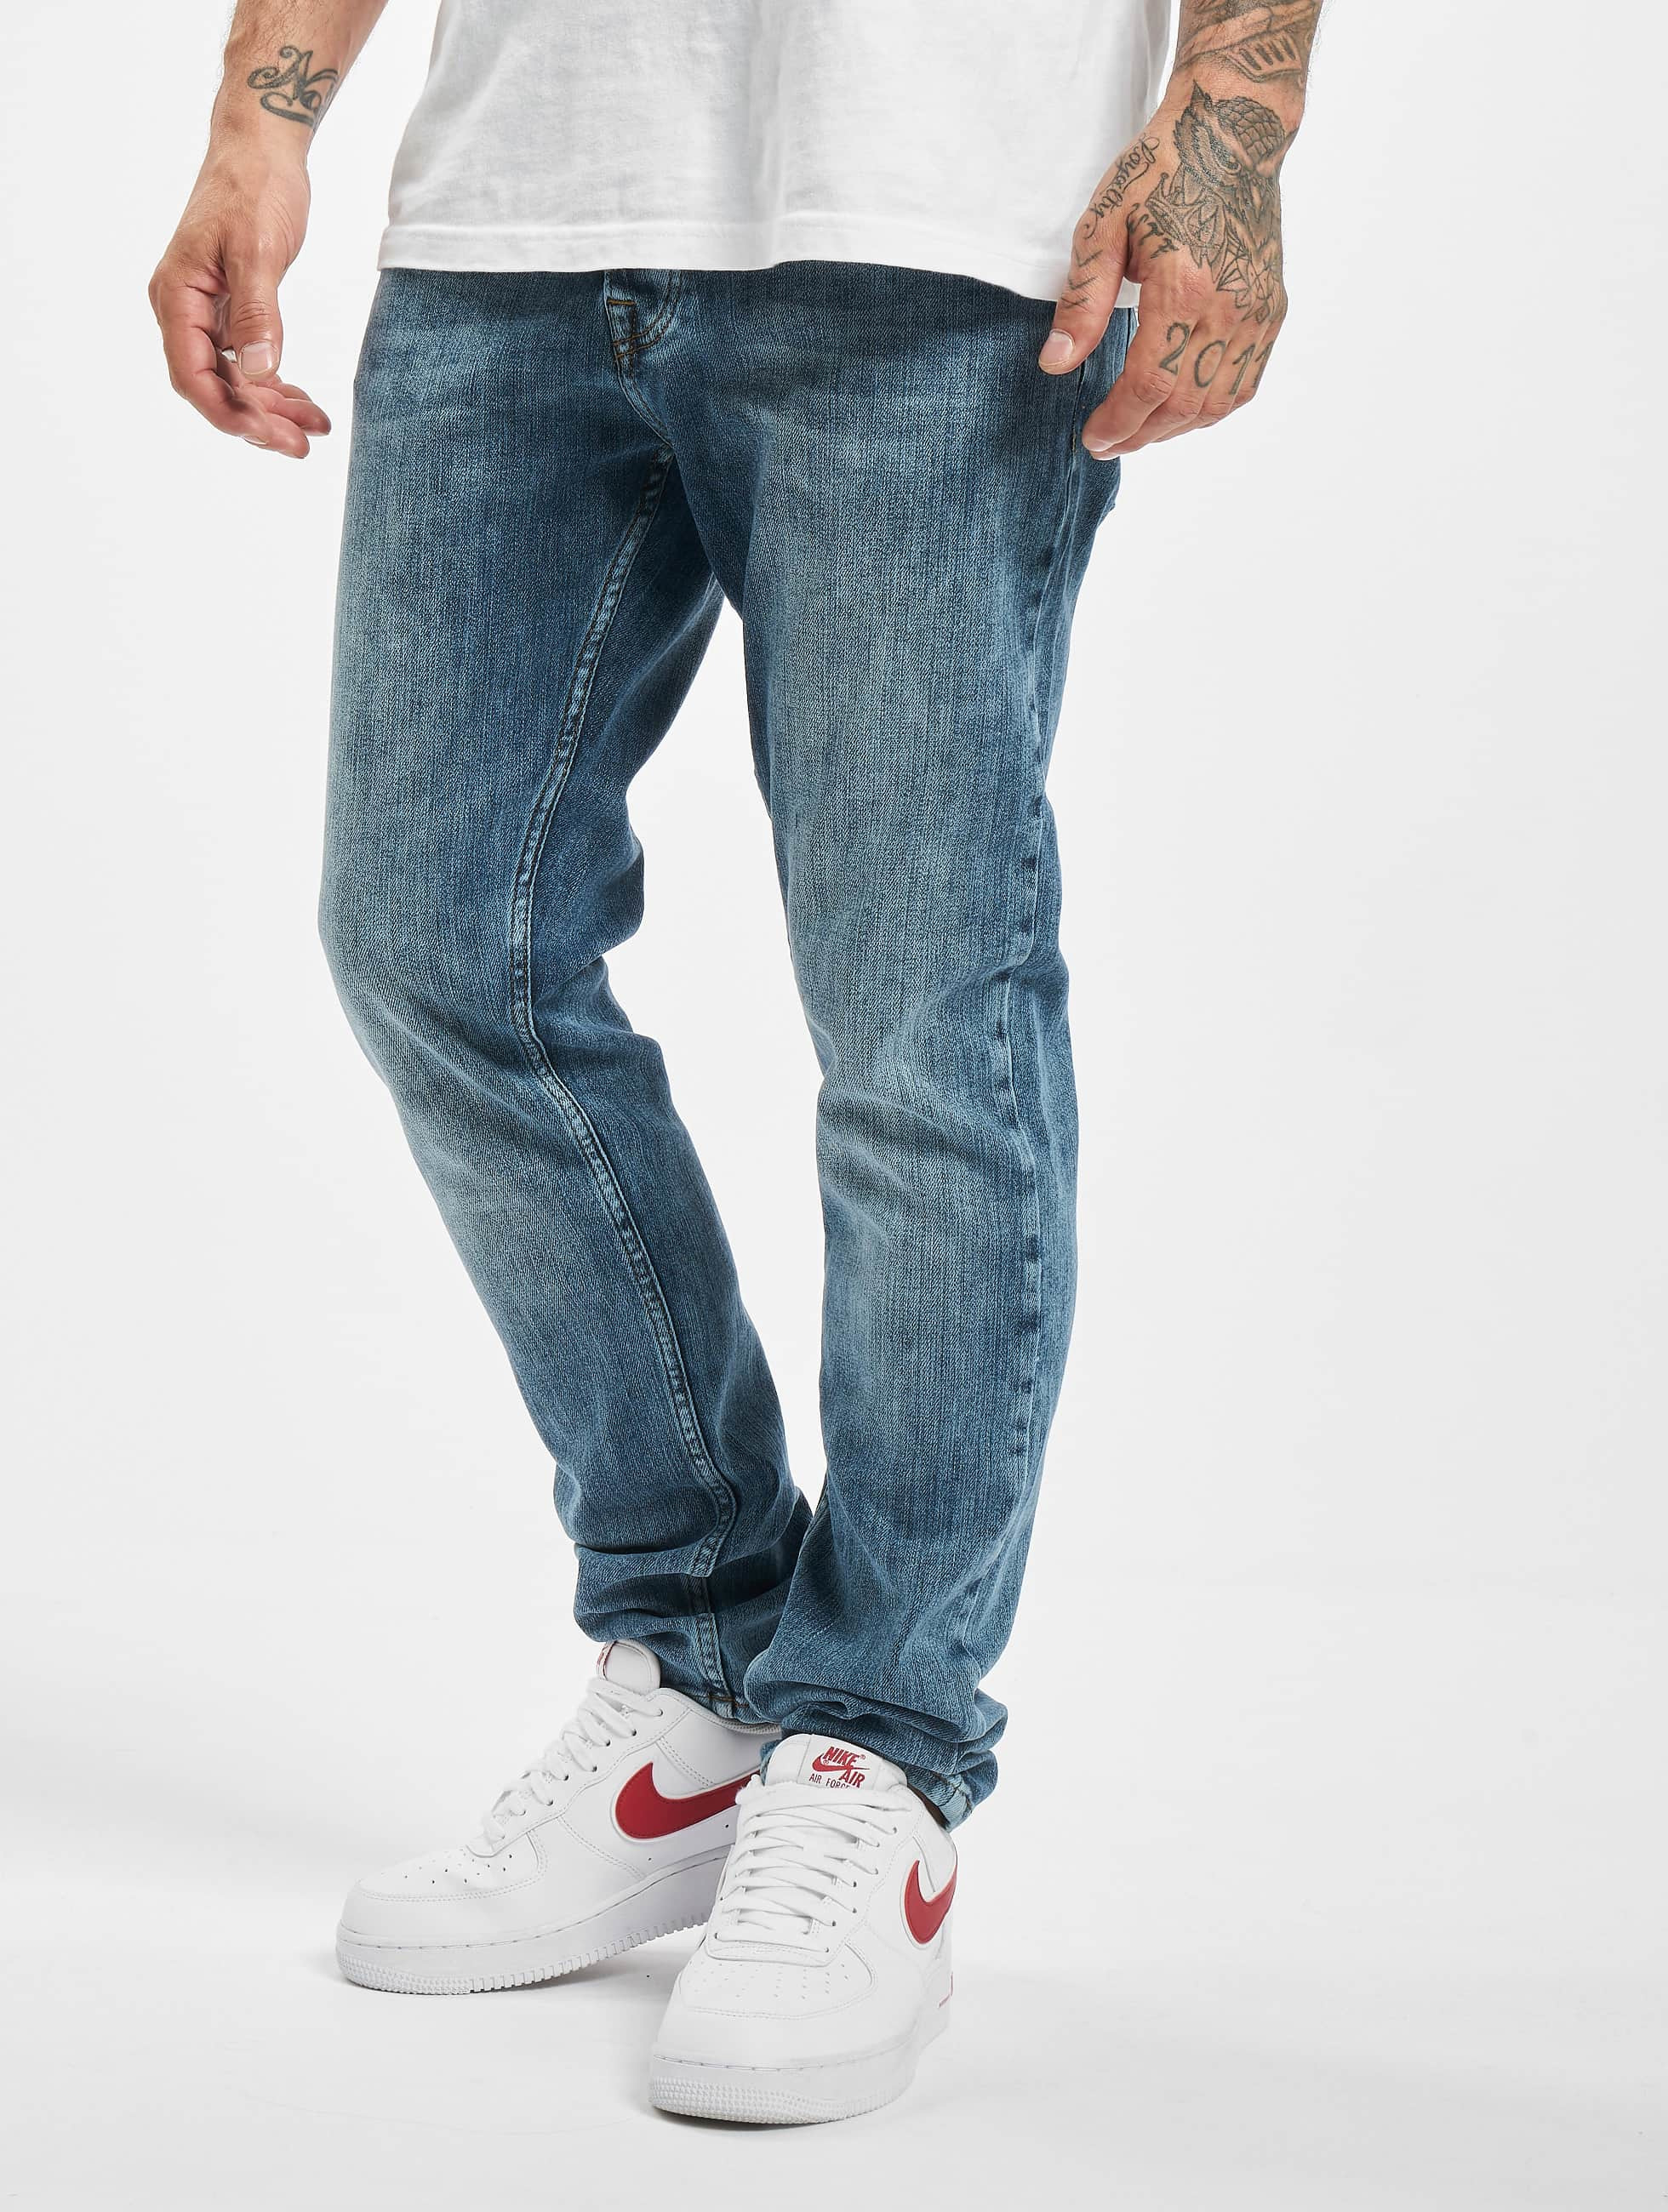 2Y / Slim Fit Jeans Mariano in blue W 36